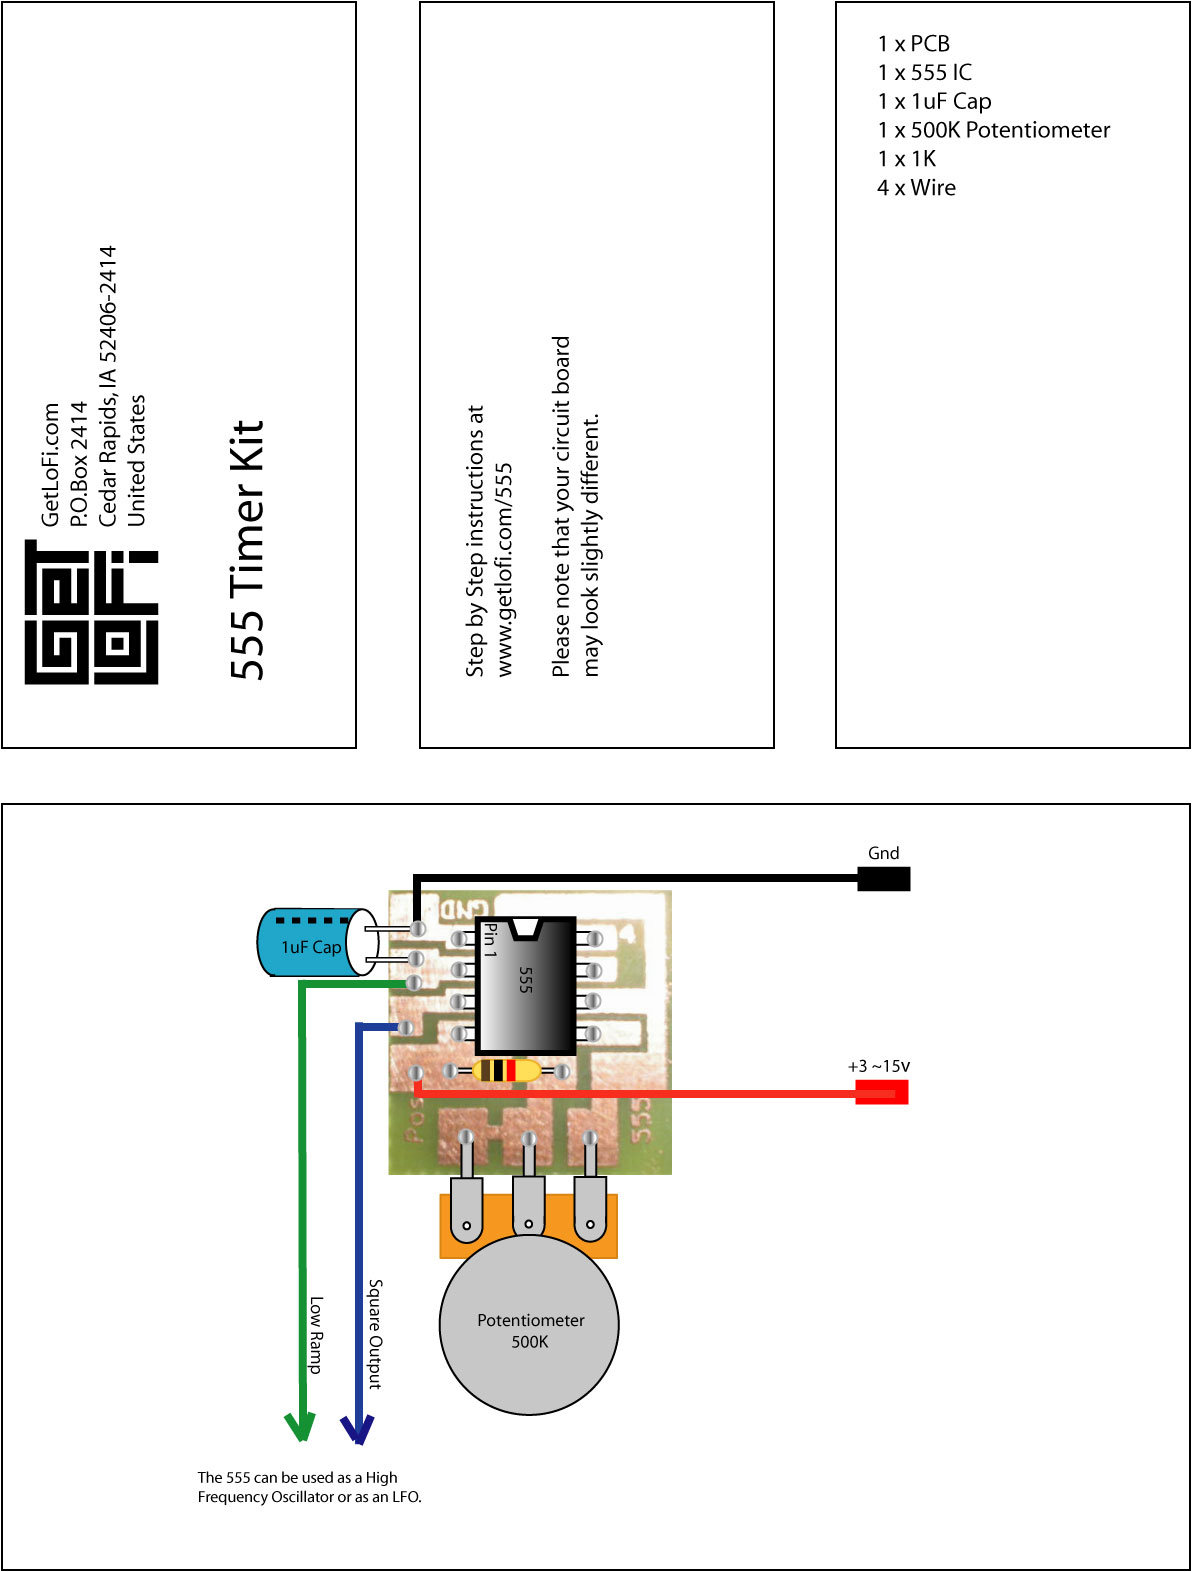 Dwdm Over Cwdm  work as well The Cheap Small Hearing Aids Project likewise Rsa Iec Resistor Symbol as well File AND Gate diagram besides Fluidsim. on circuit diagram